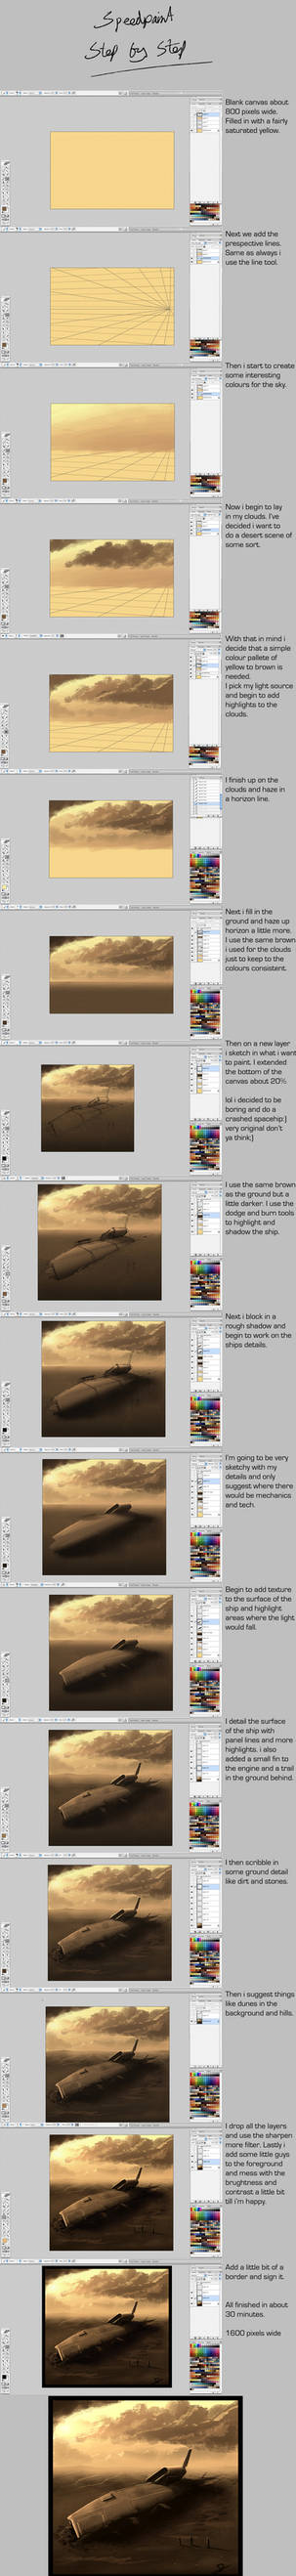 .:Speedpaint step by step:. by David-Holland